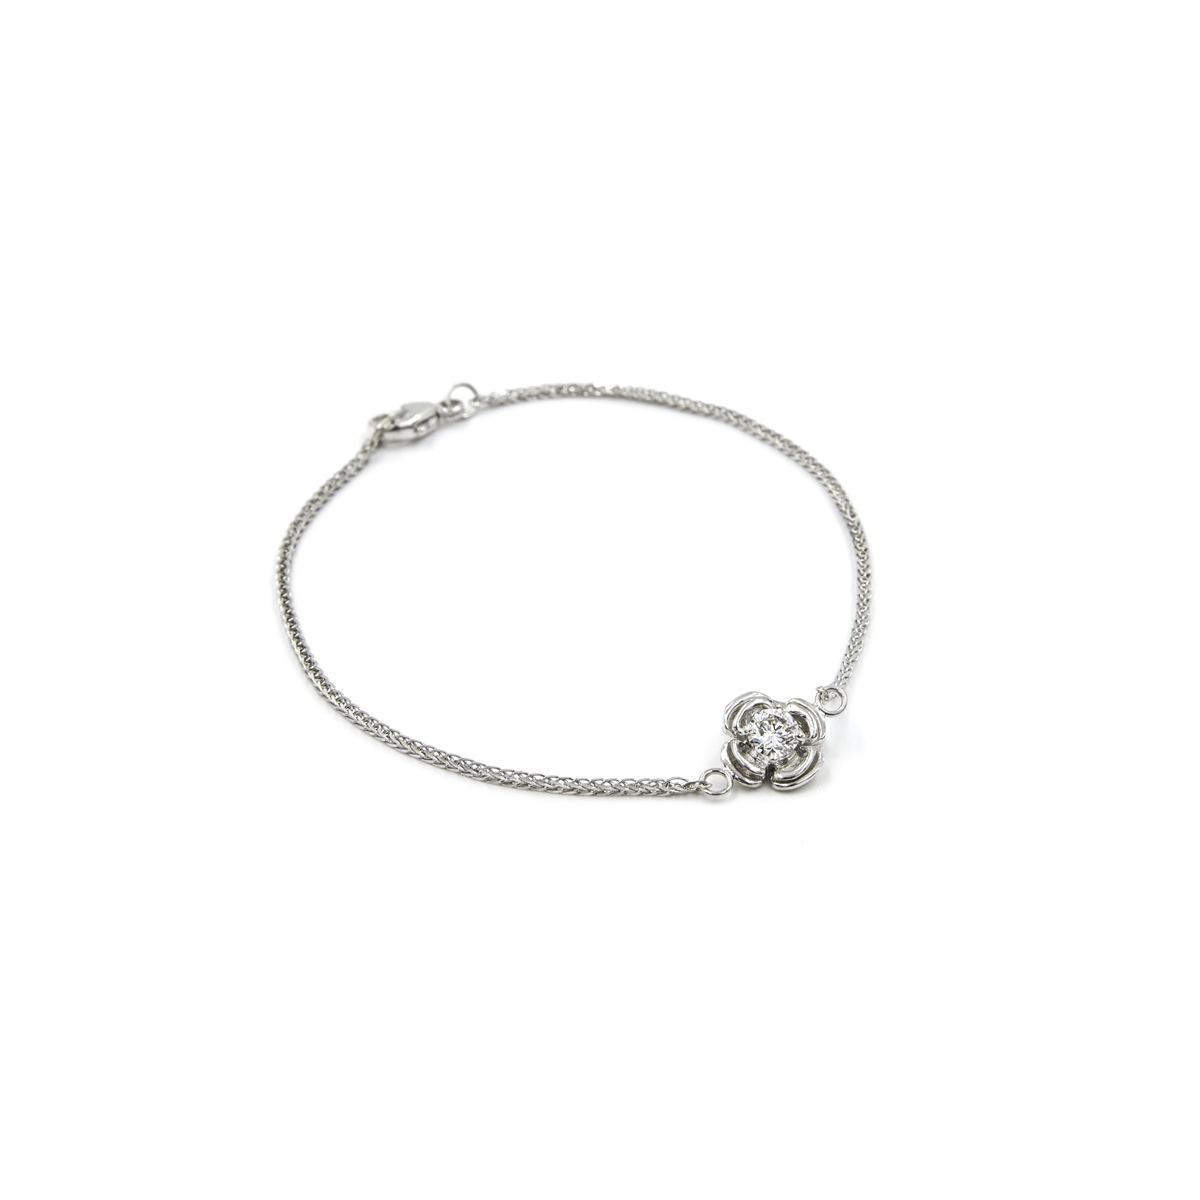 WHITE GOLD FLOWERETTE BRACELET - Chris Aire Fine Jewelry & Timepieces